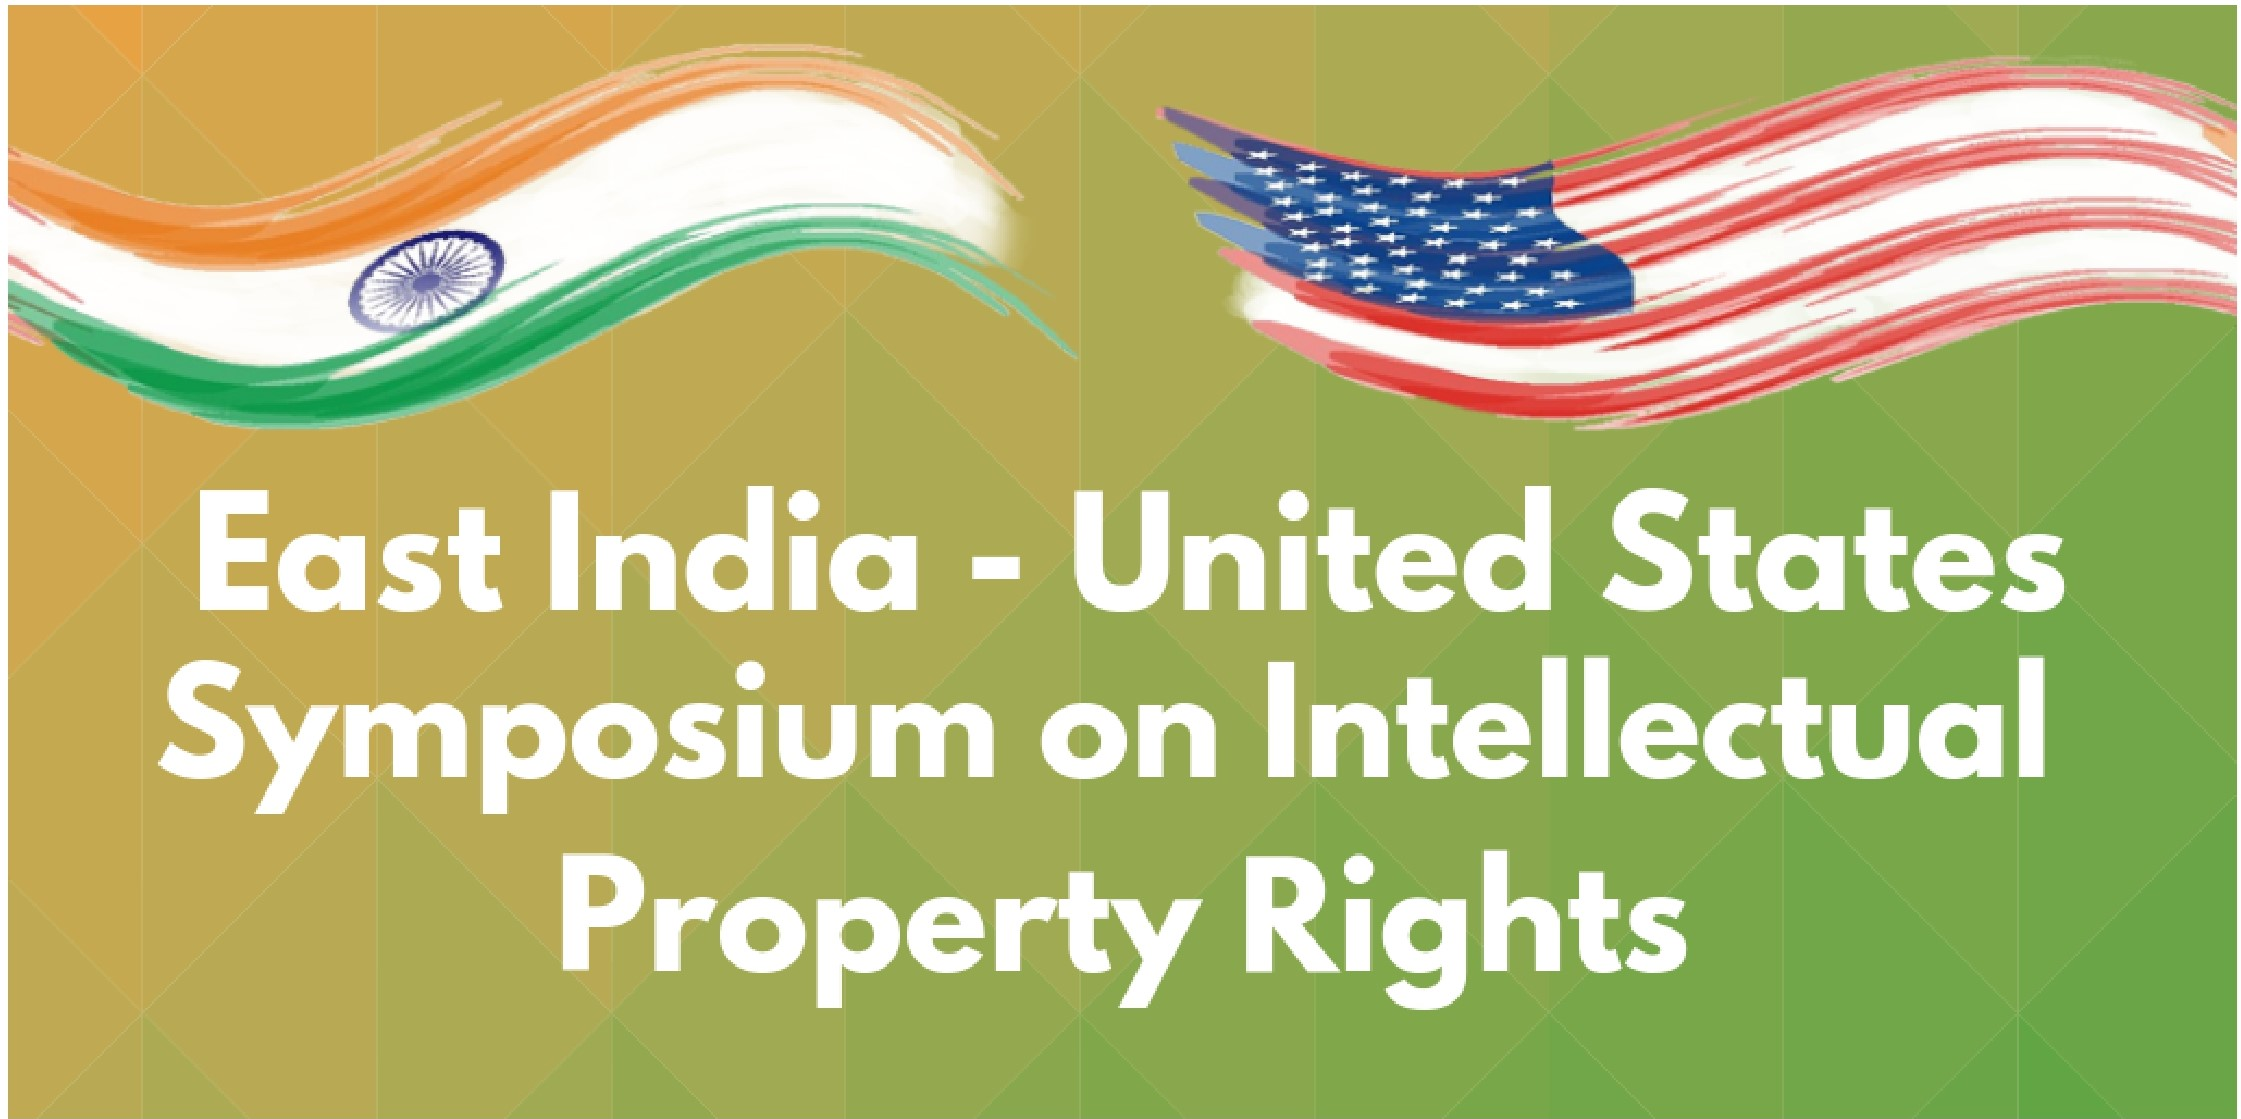 East India – US Symposium on IPR @ Kolkata [June 28-29 & July 1-2]: Apply by June 20